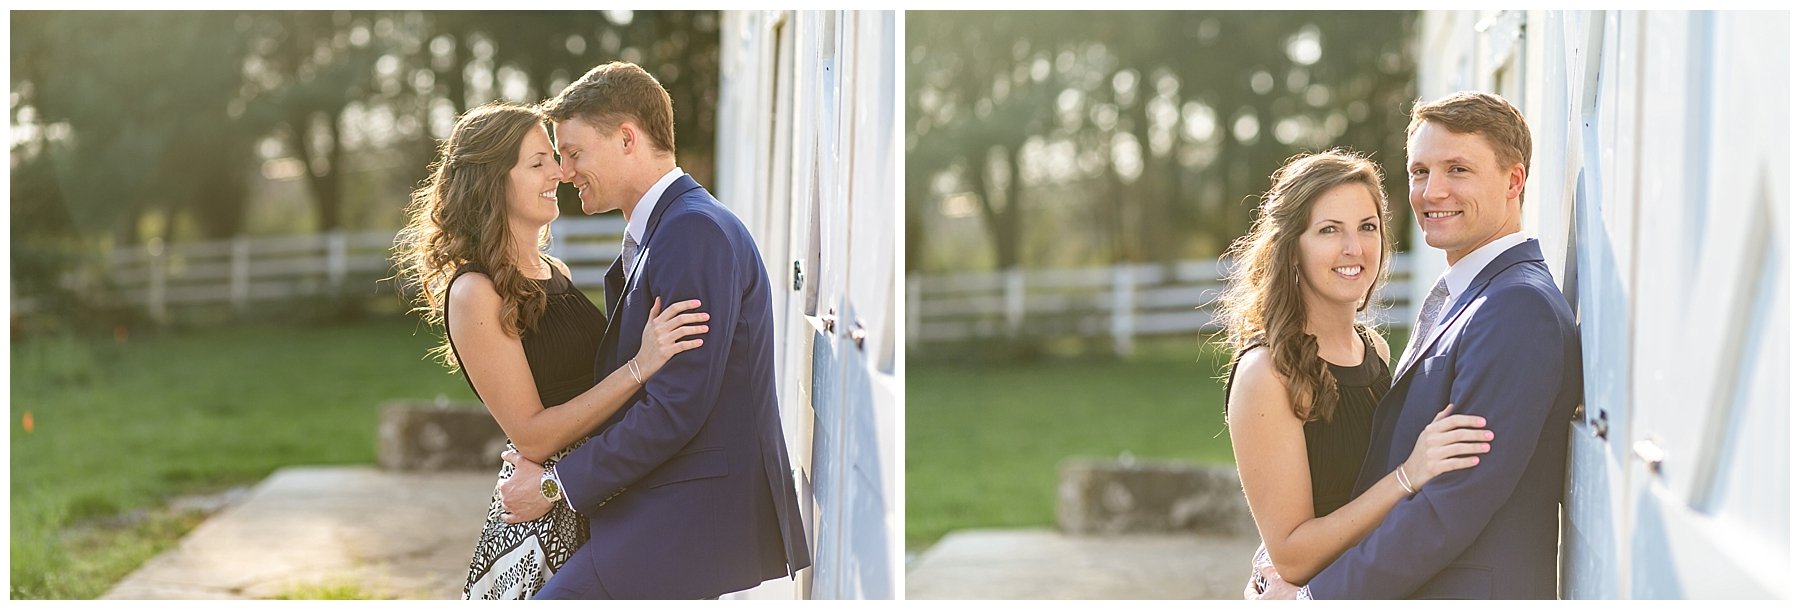 Chelsea Phil Private Estate Engagement Living Radiant Photography photos color_0016.jpg